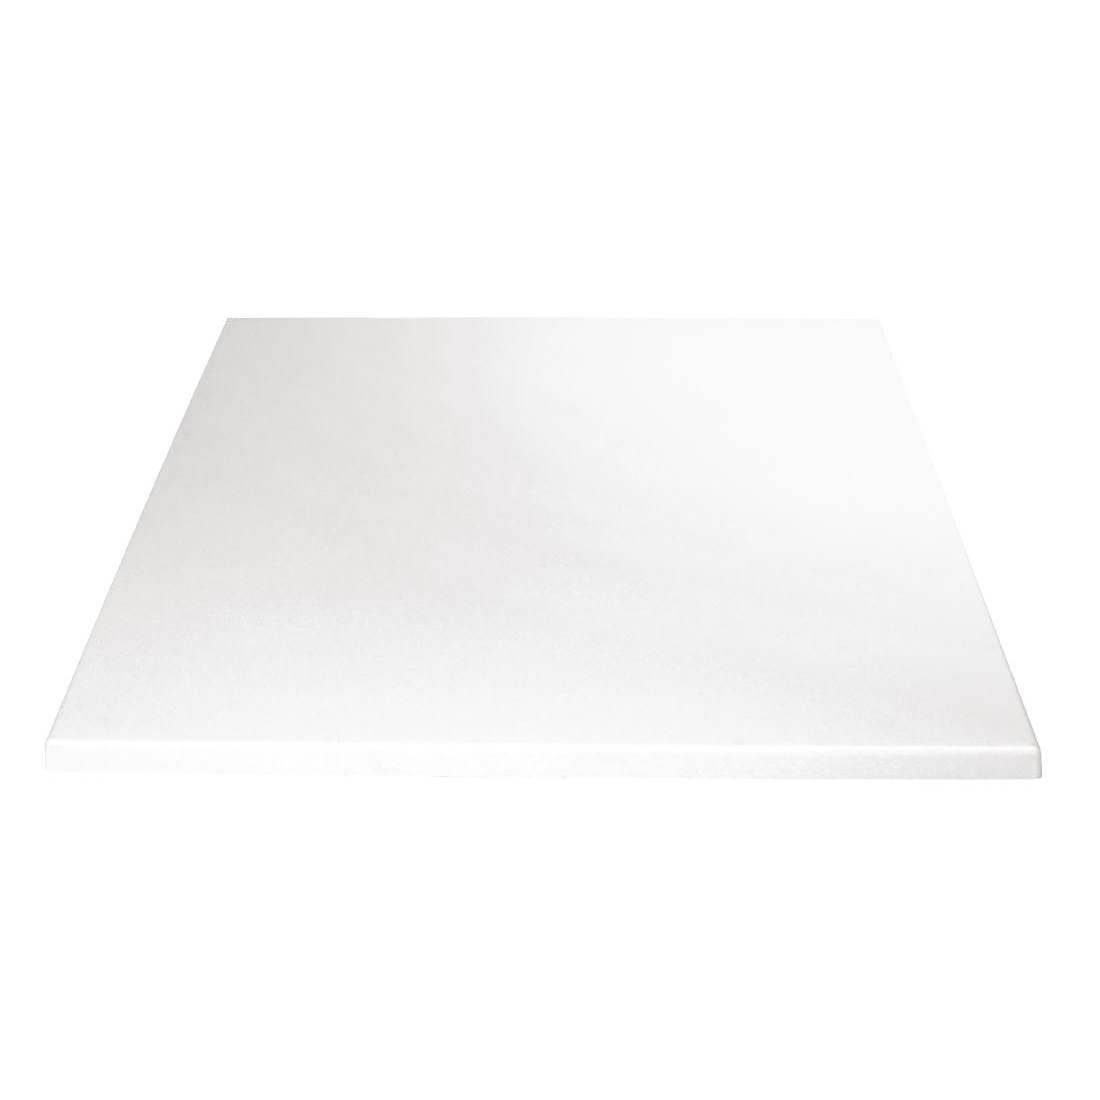 Plateau de table carré Bolero blanc 600mm